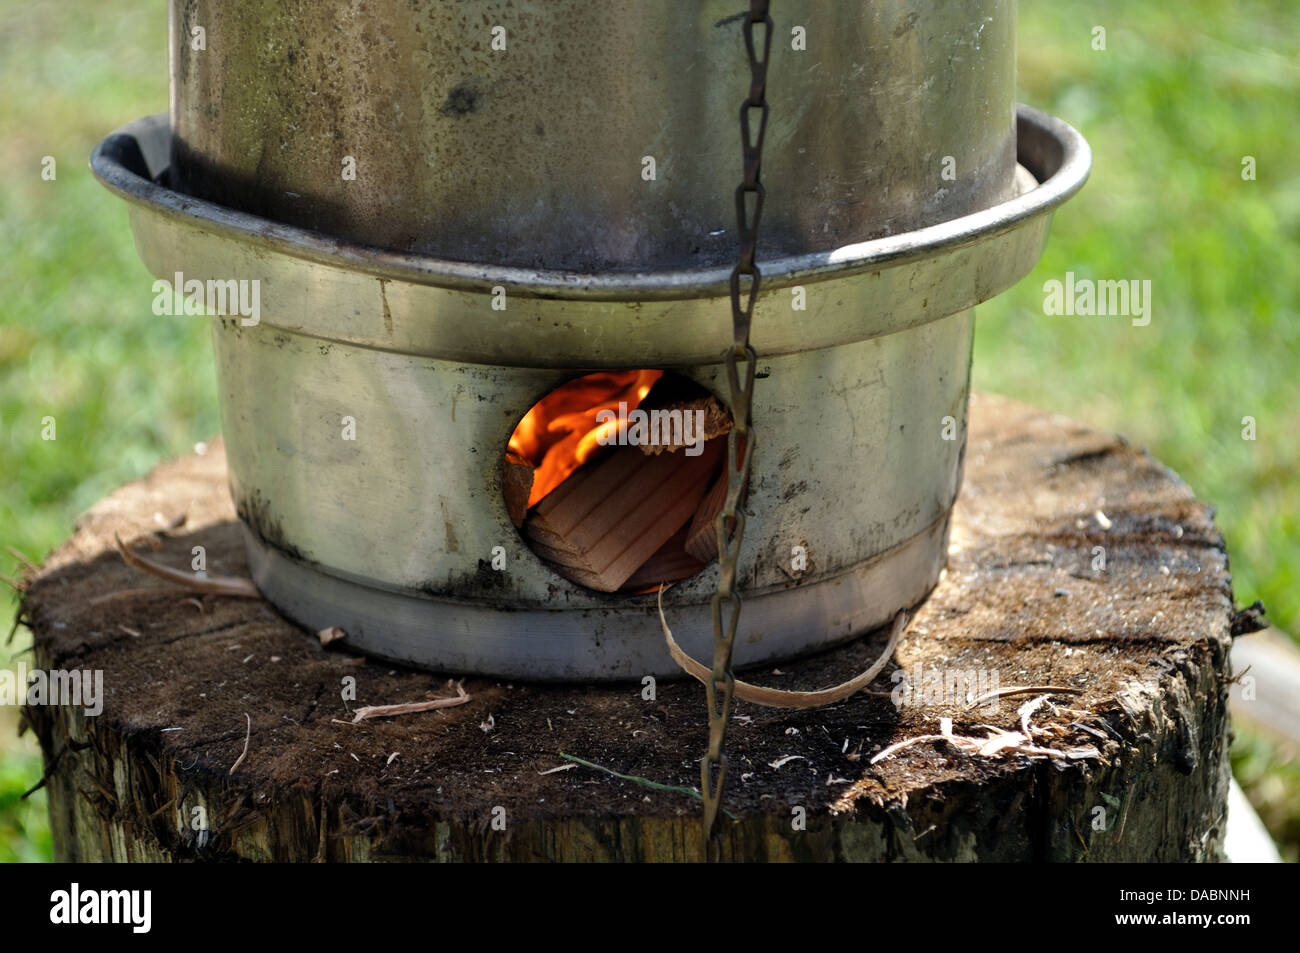 Storm kettle, camping - Stock Image